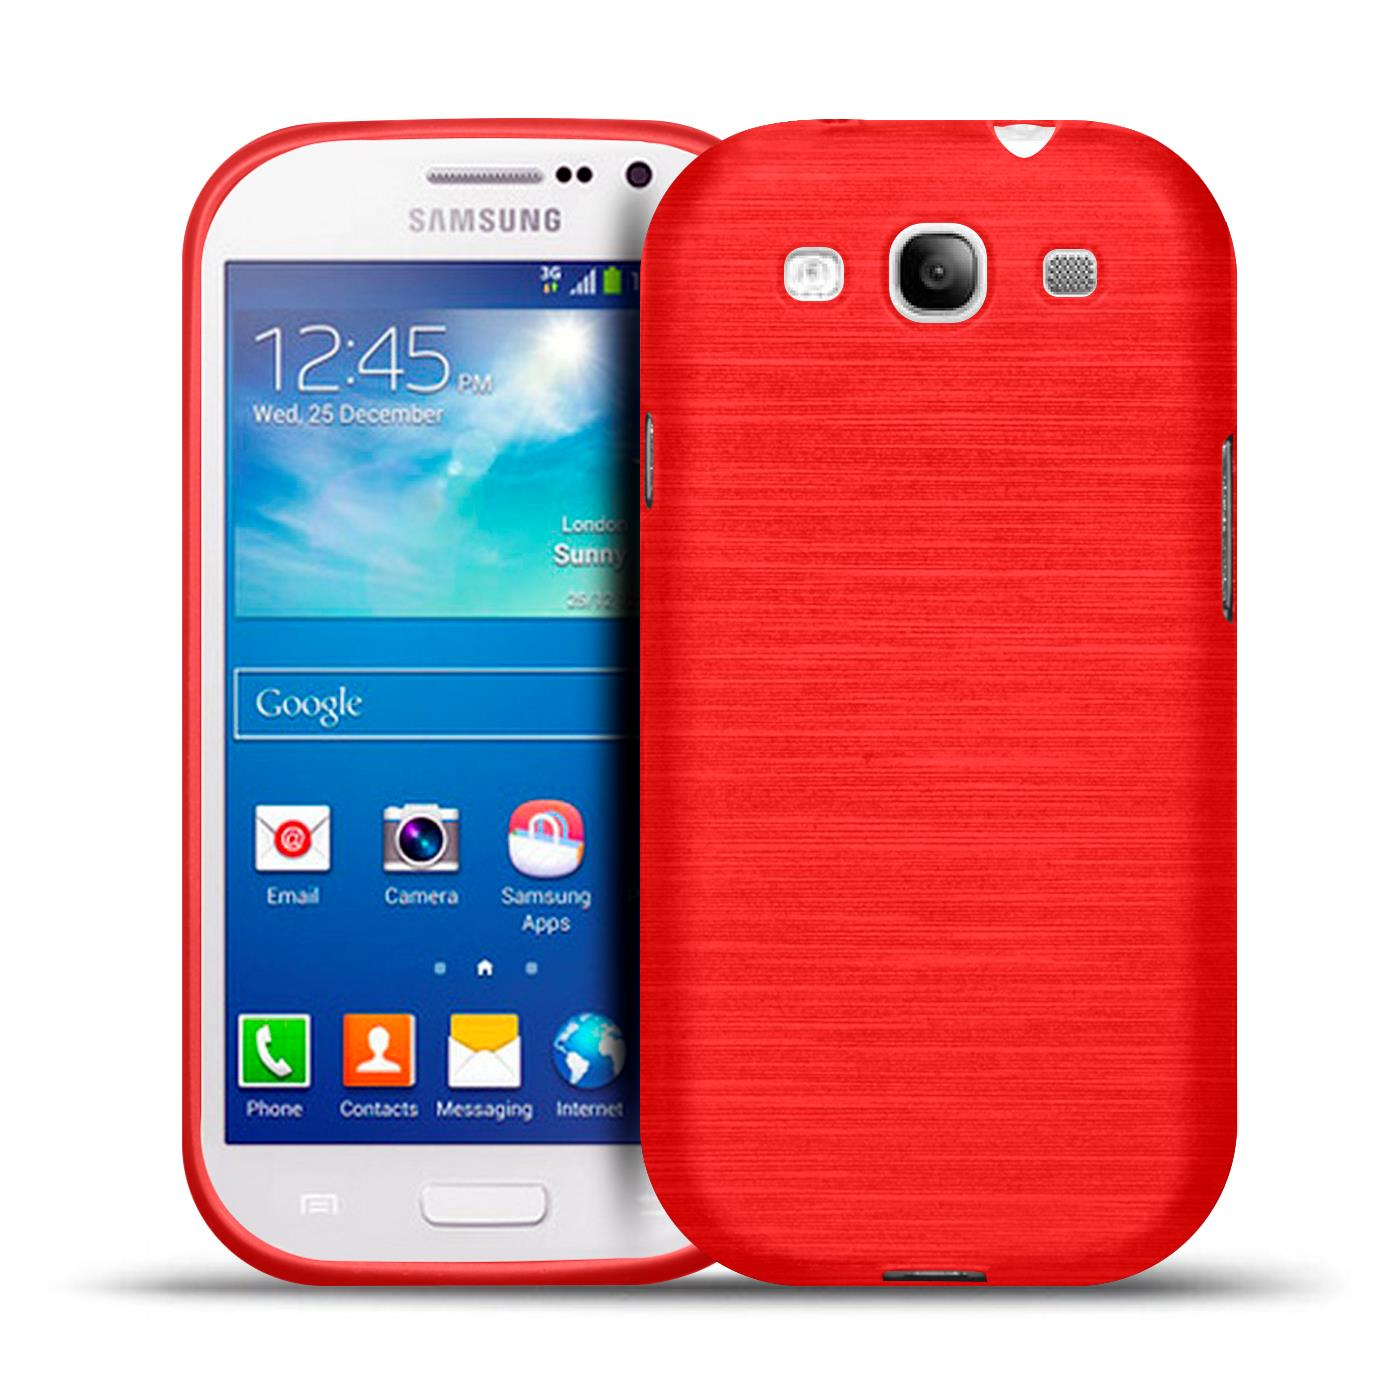 brand new 9a8d7 dfaaa Details about Protective Case Handy Samsung Galaxy S3 Neo Cover Silicone